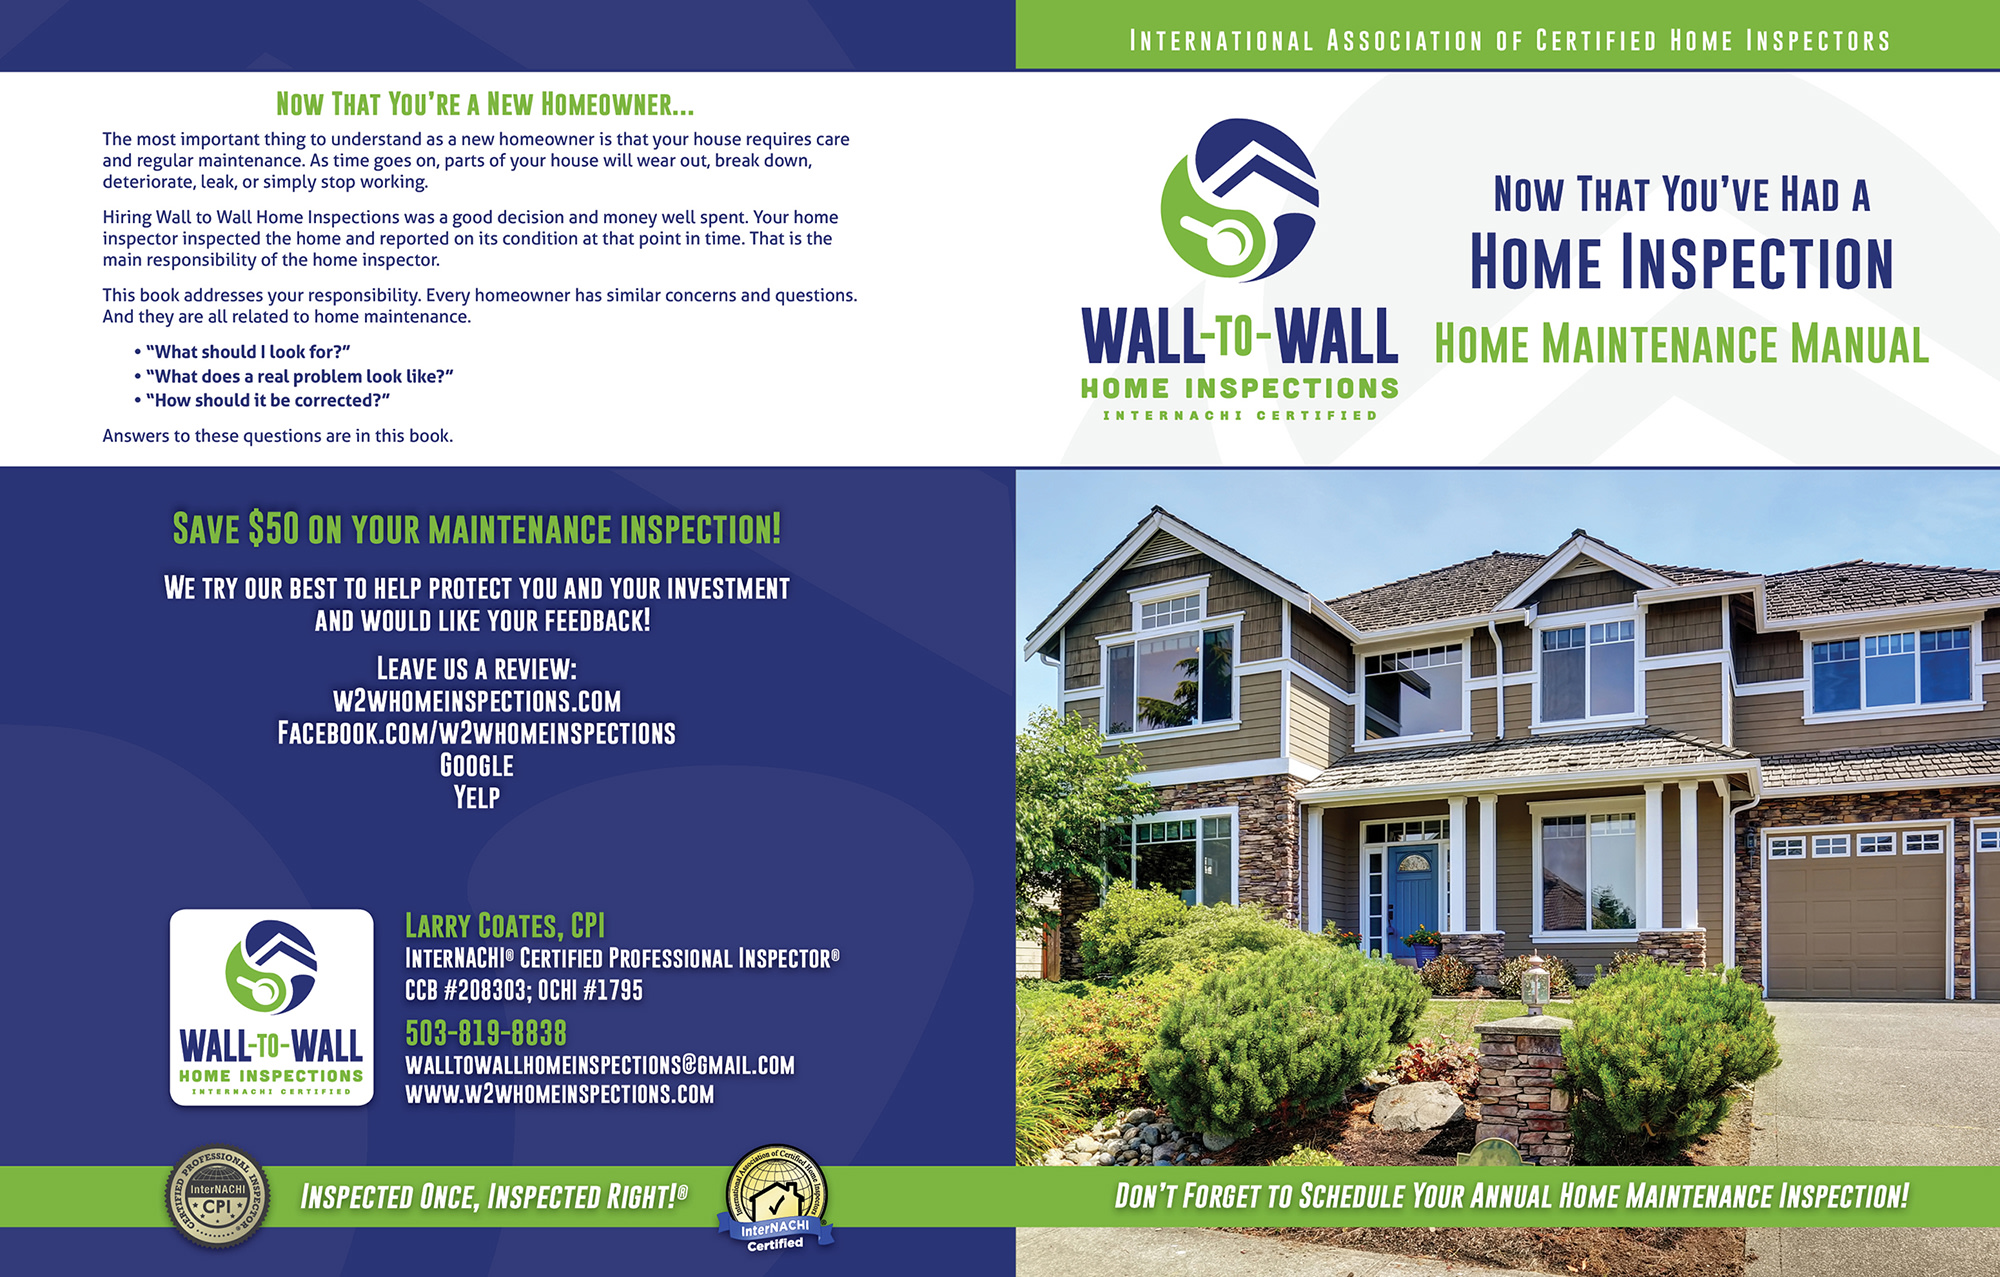 Wall to Wall Home Inspections book